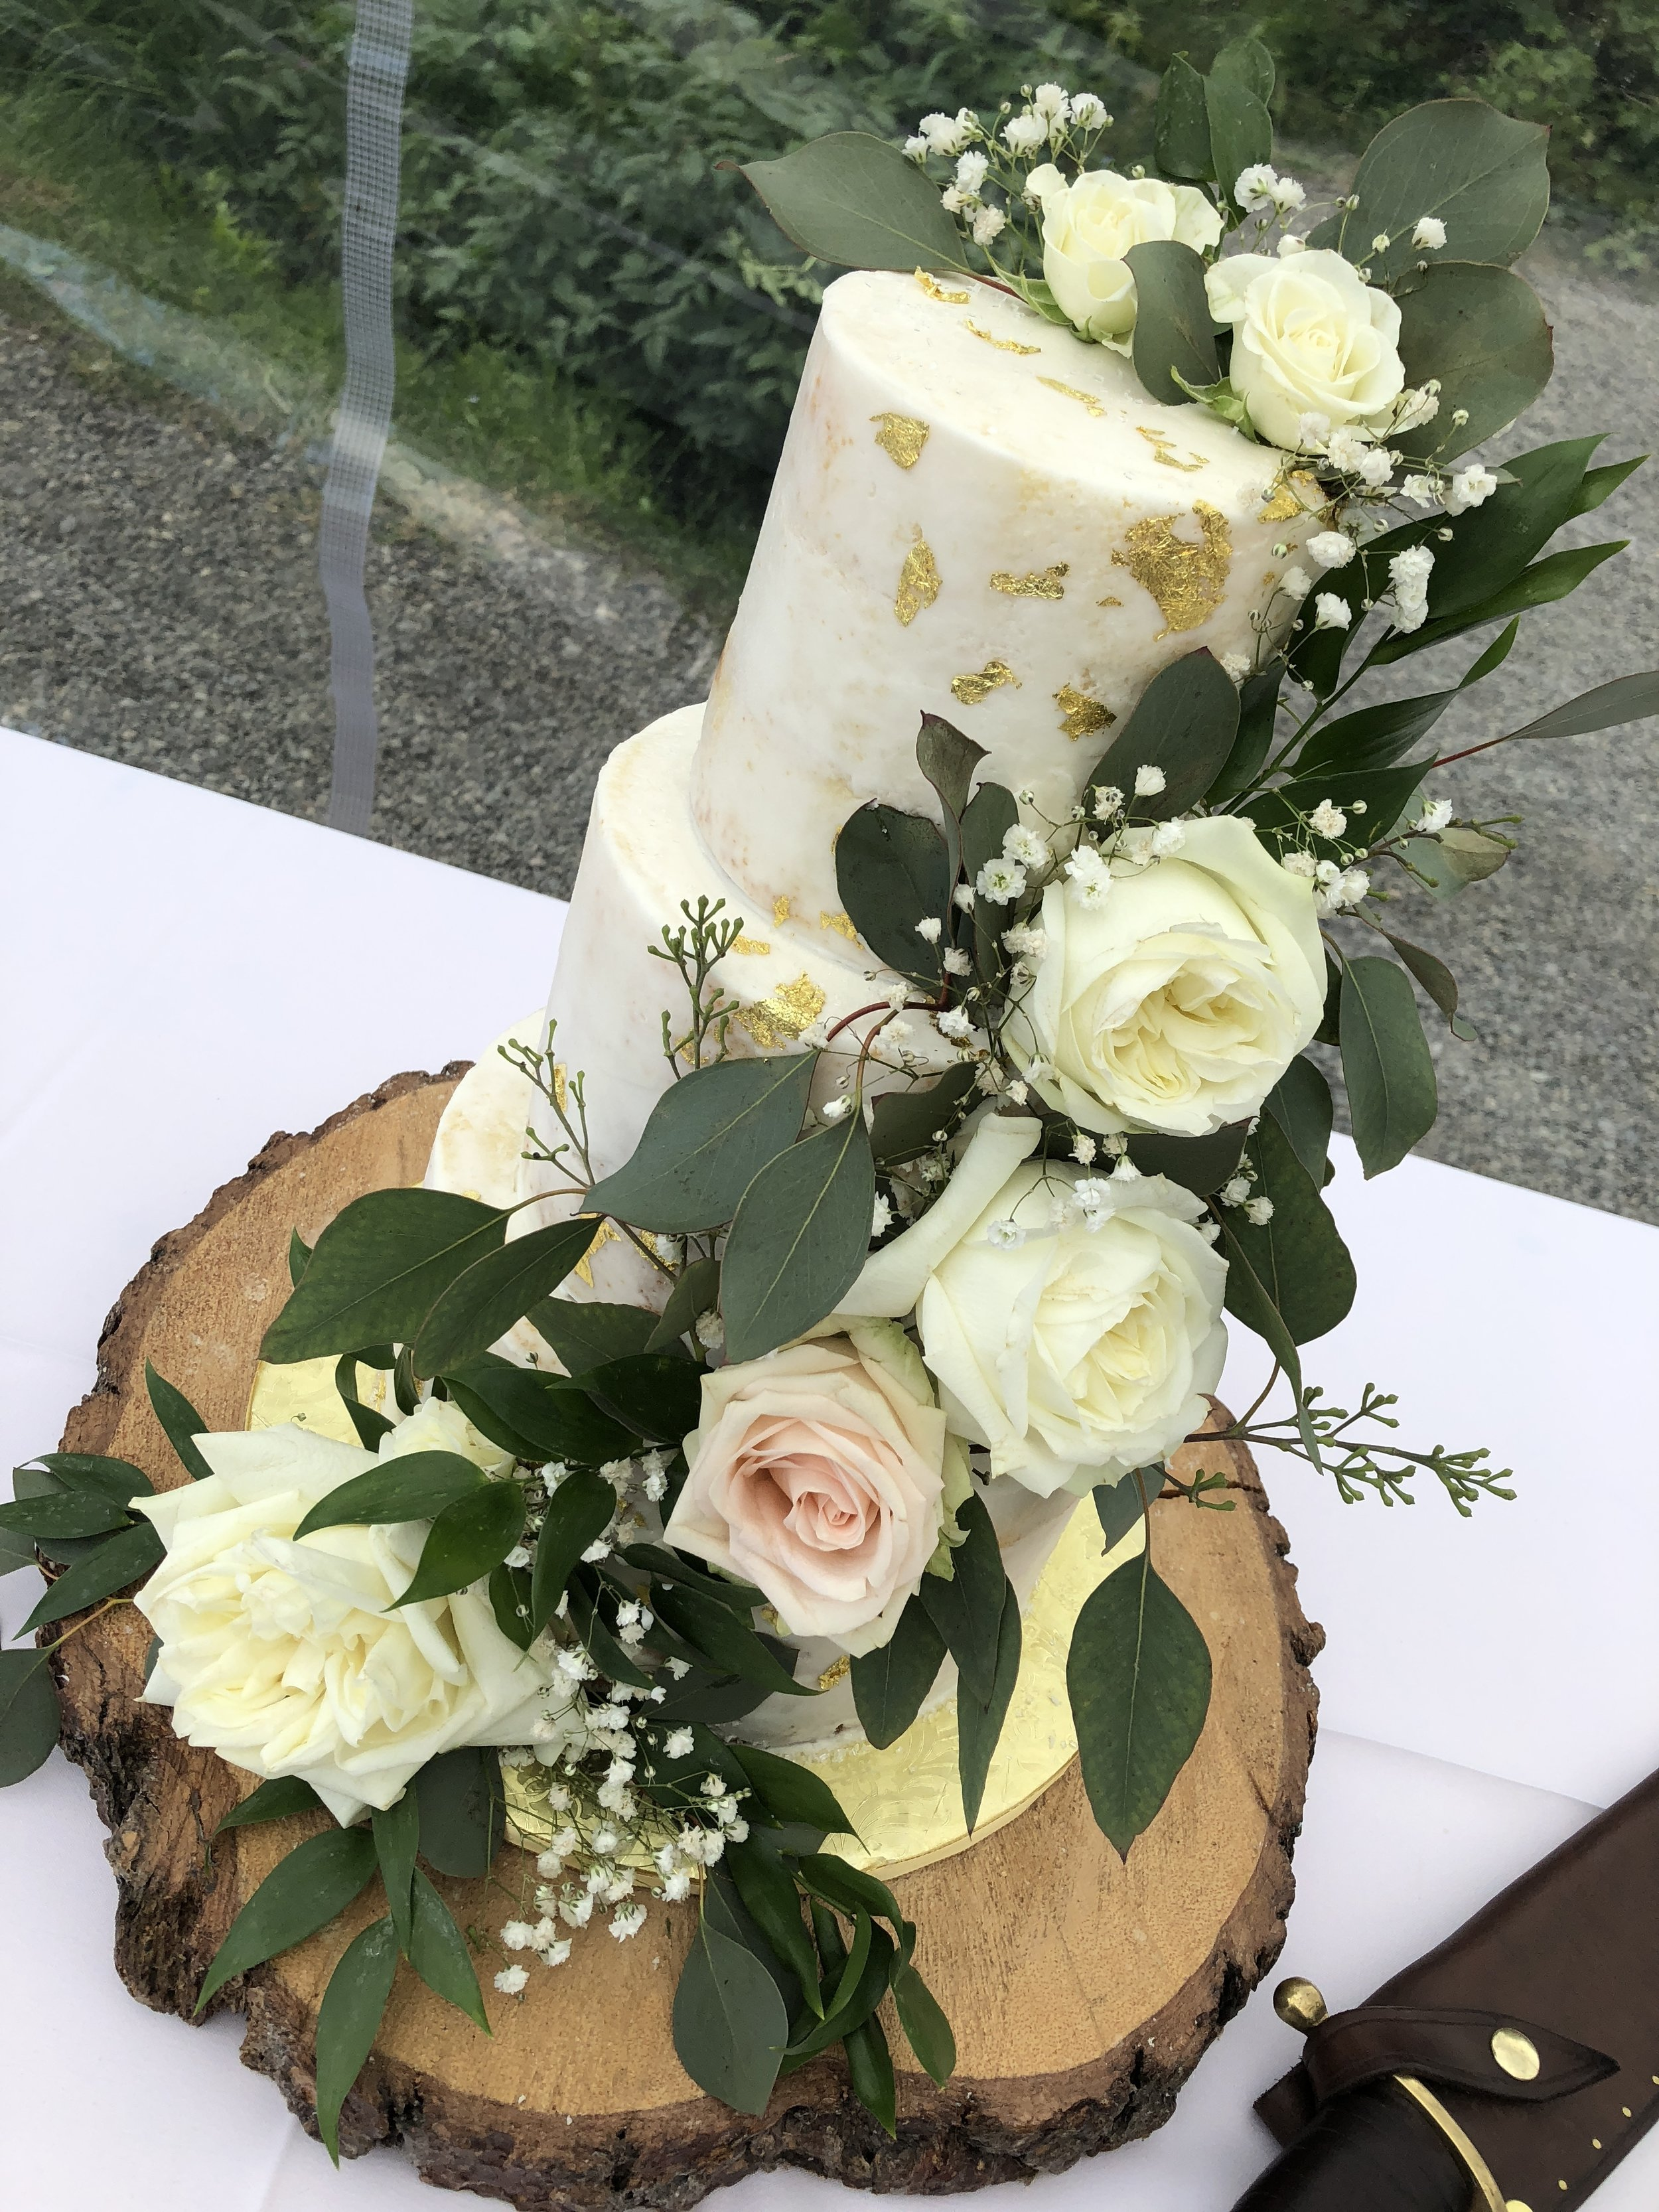 Thin Iced - Gold flakes not included.Includes fresh flower arrangementIncludes a custom board(size shown: 59 servings)